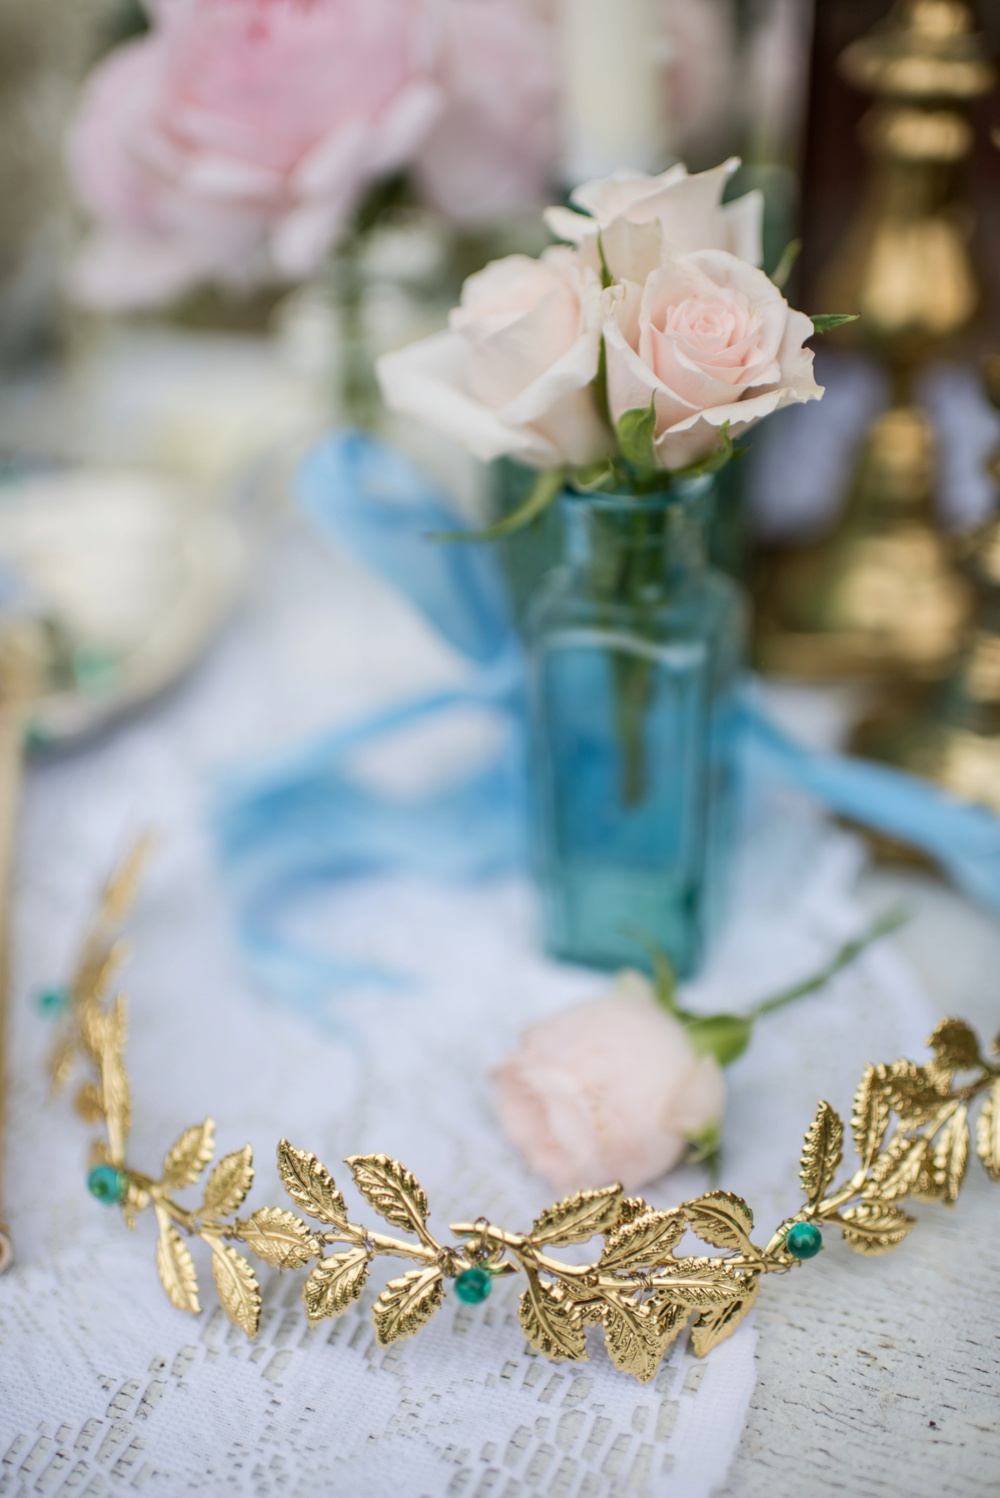 fine-art-wedding-photographer-jane-beadnell-photography-bridal-accessories-bespoke-vintage-castle-4